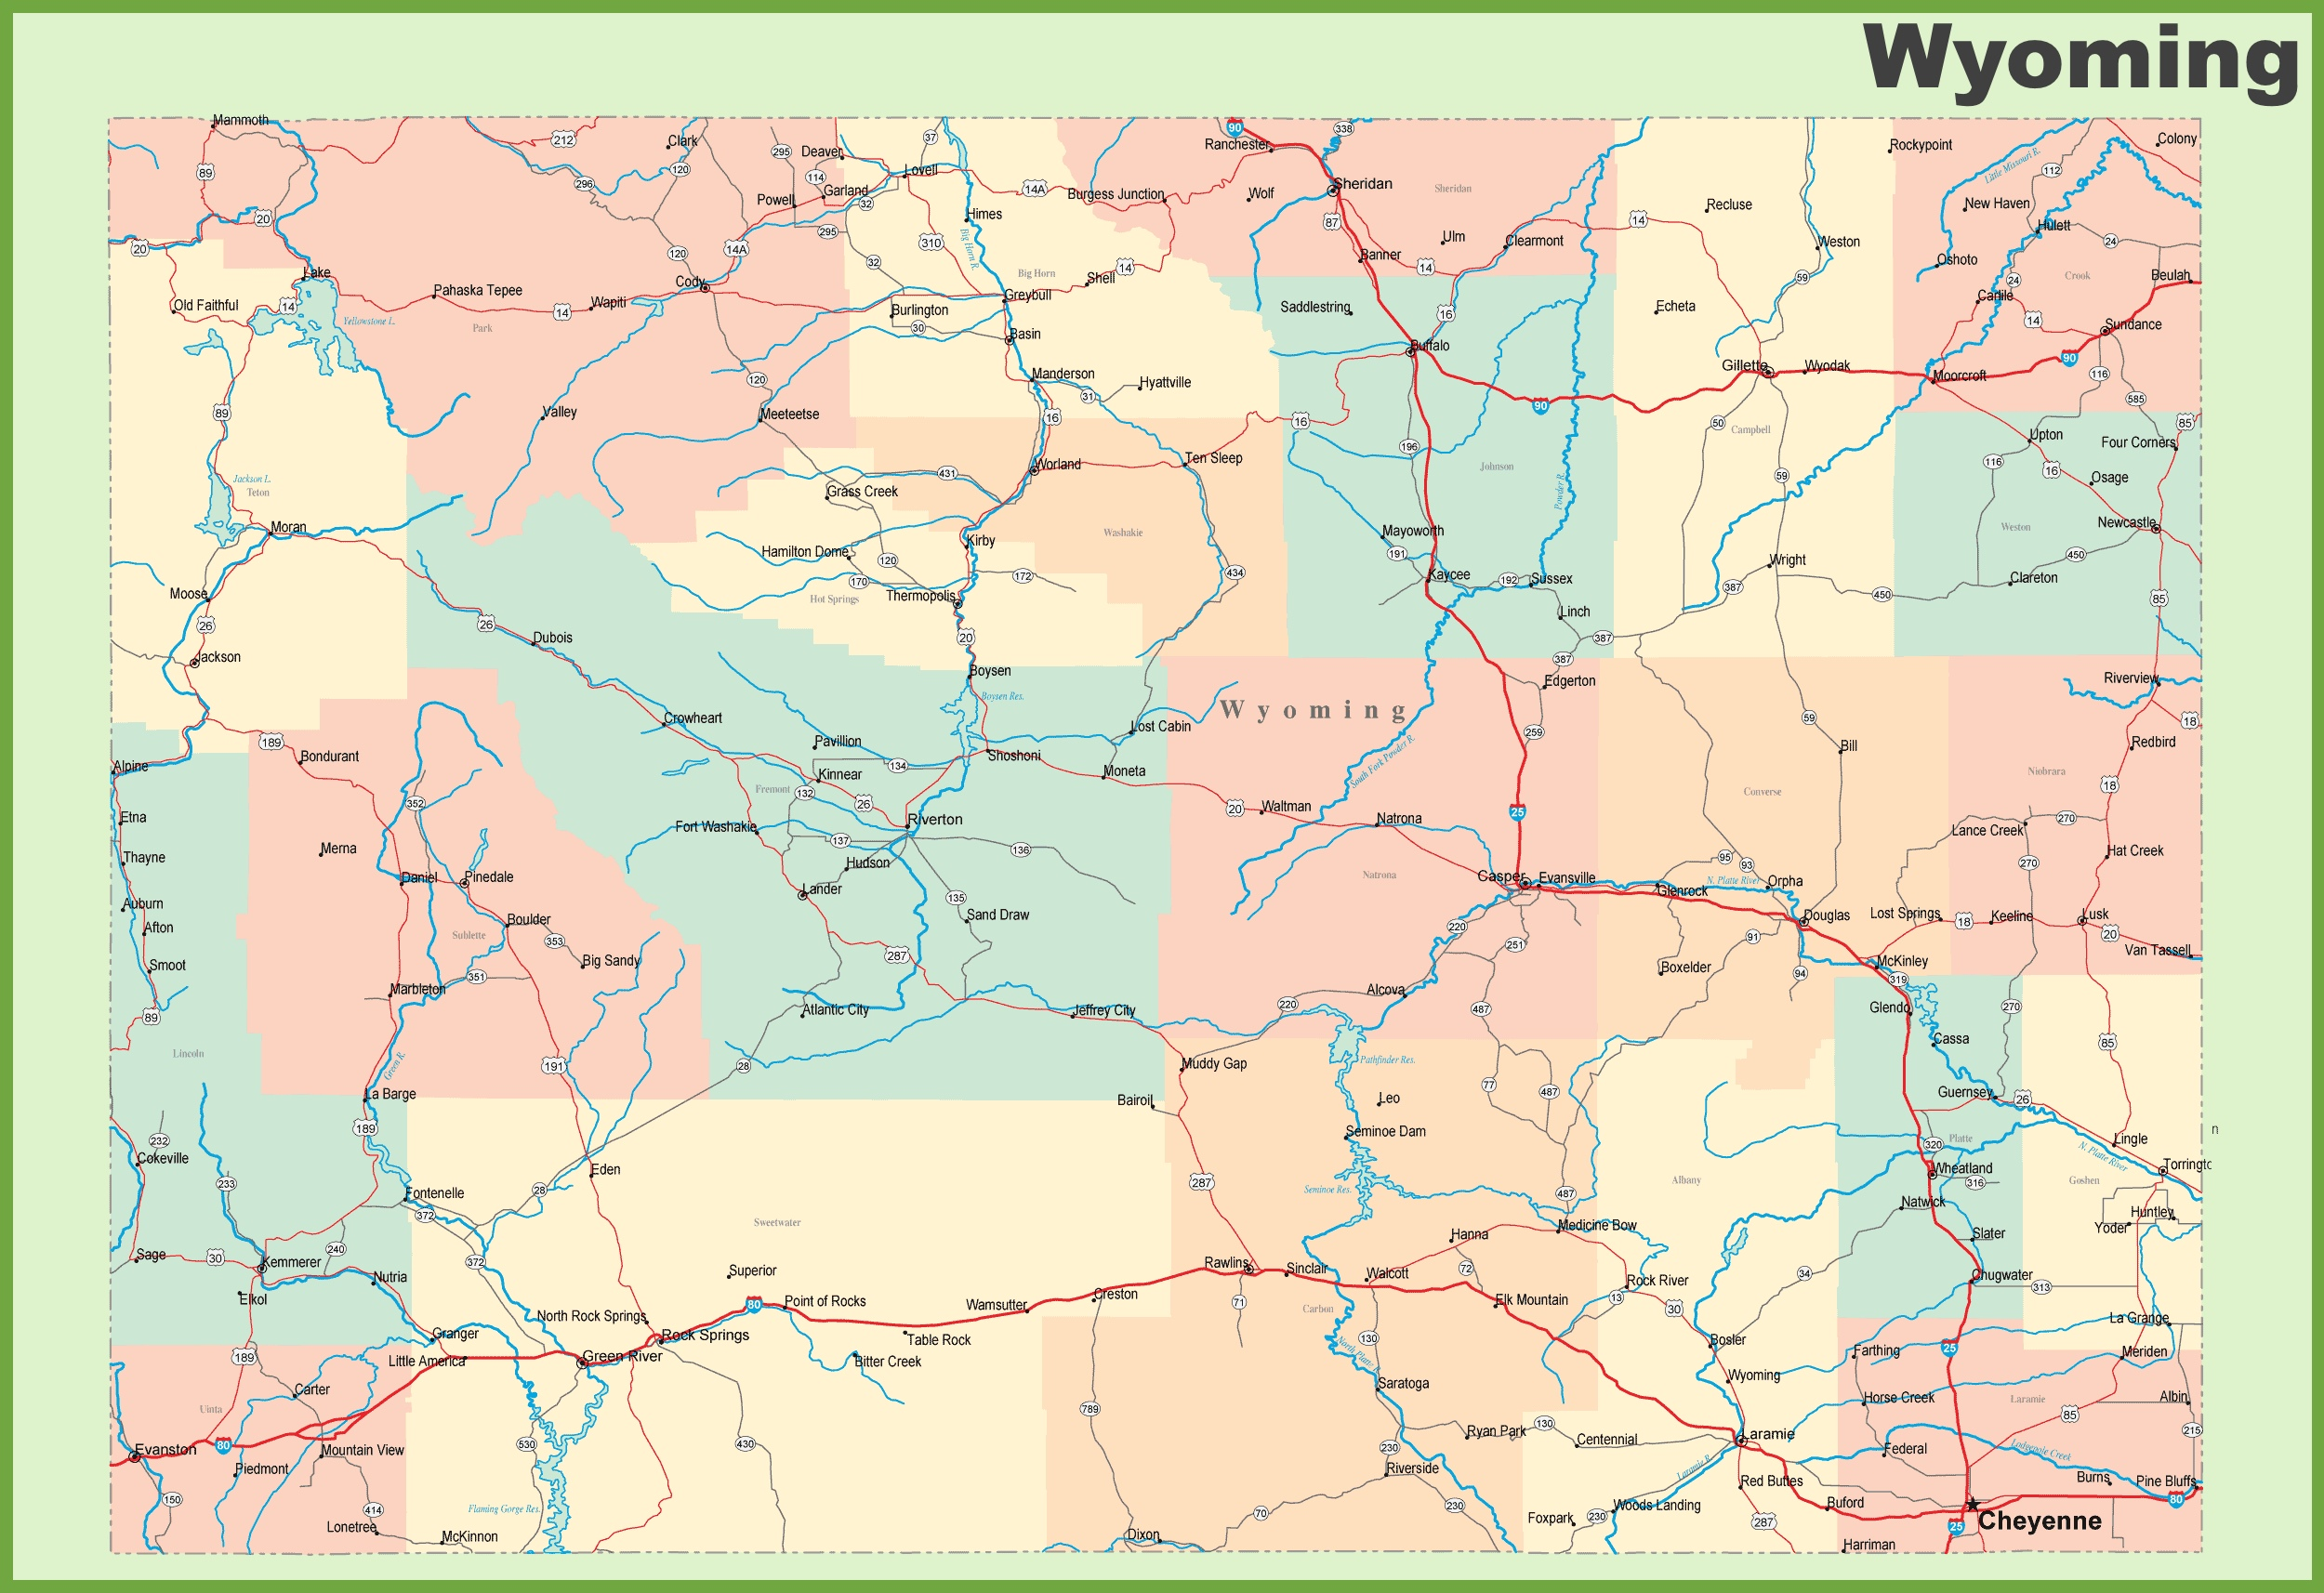 Road Map Of Wyoming With Cities - Map of colorado ski resorts and cities